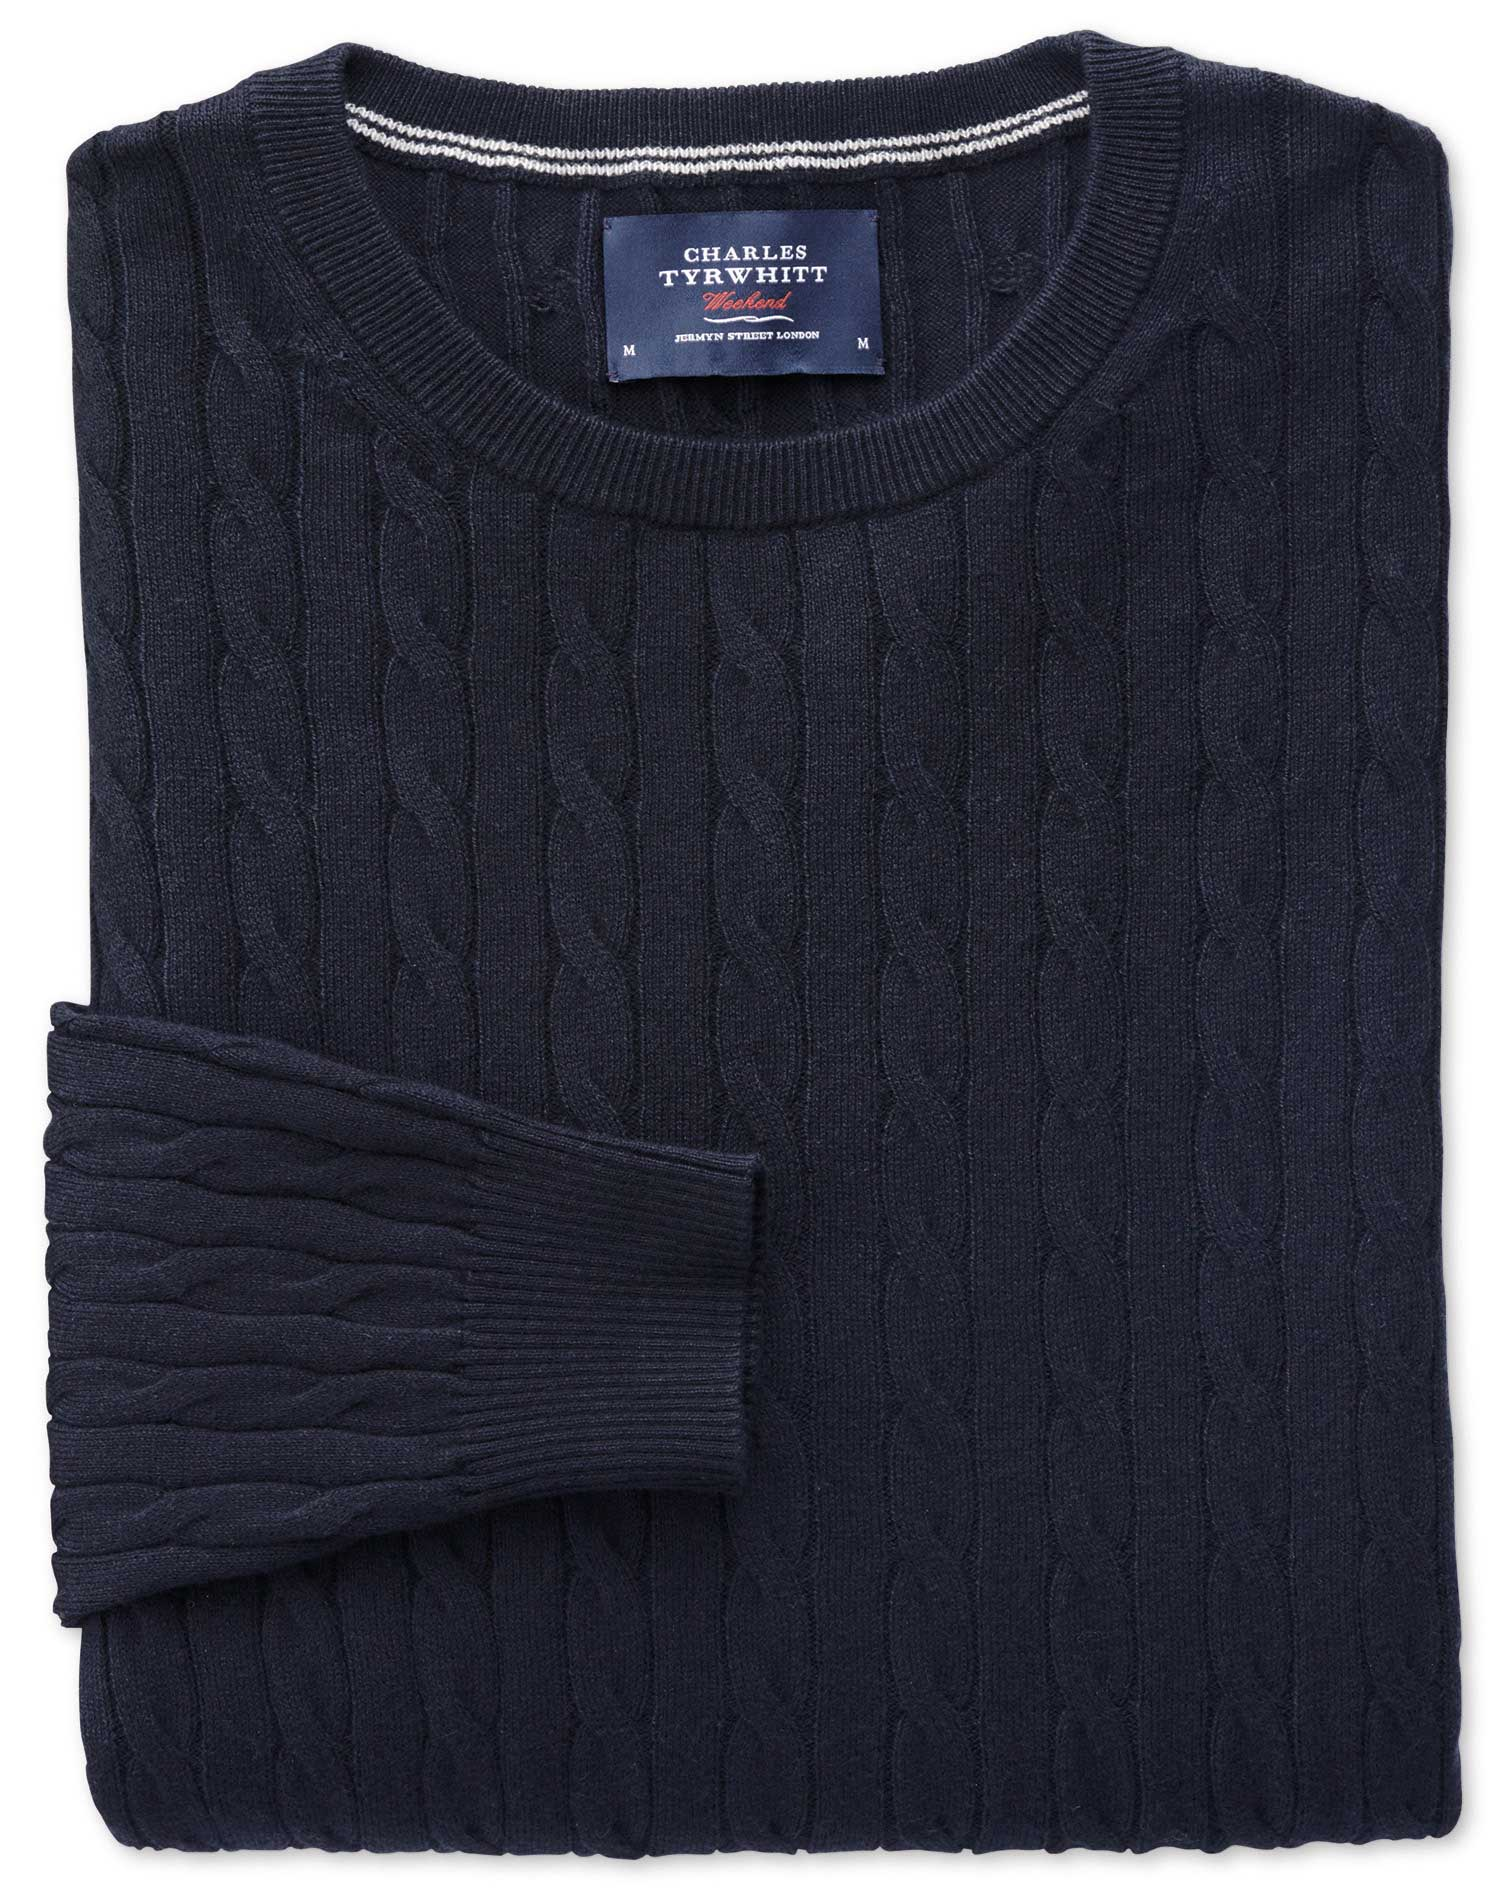 Navy Cotton Cashmere Cable Crew Neck Jumper Size XXL by Charles Tyrwhitt